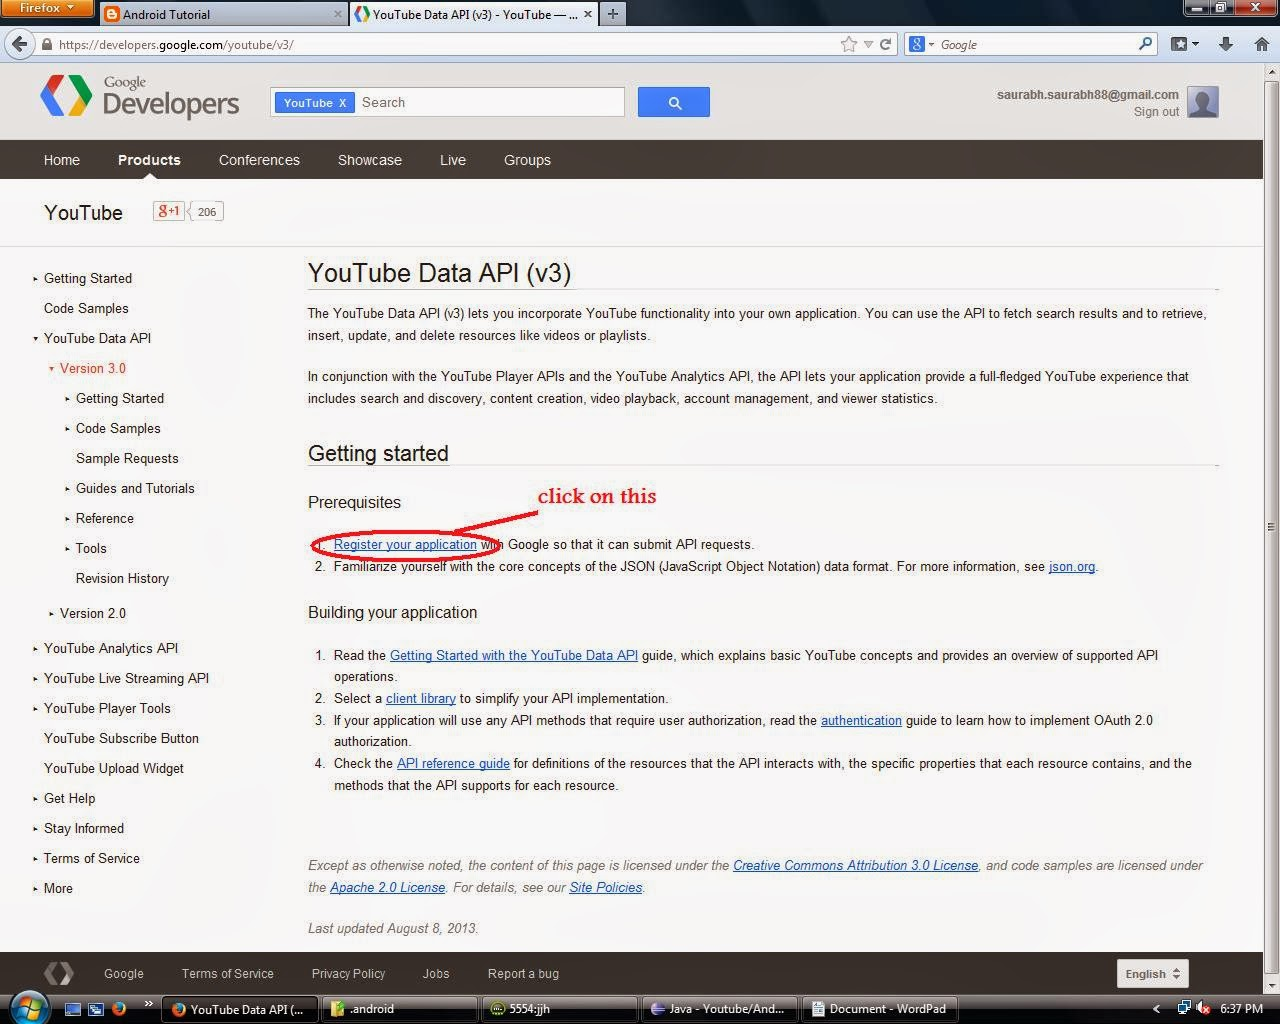 Android Tutorial: How to download the playlist from youtube